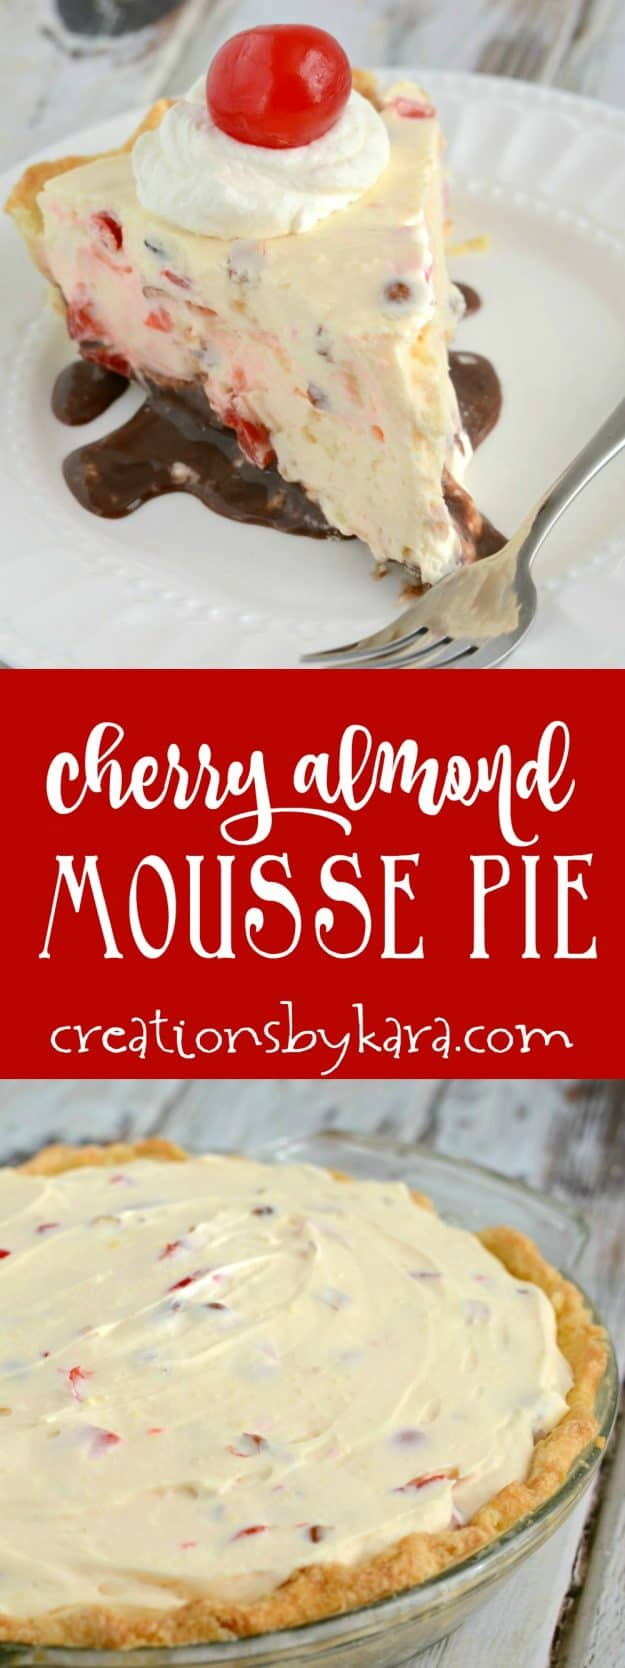 A layer of fudge, almonds, cherries, and cream cheese make this pie spectacular! My husband requests this pie for his birthday every year.